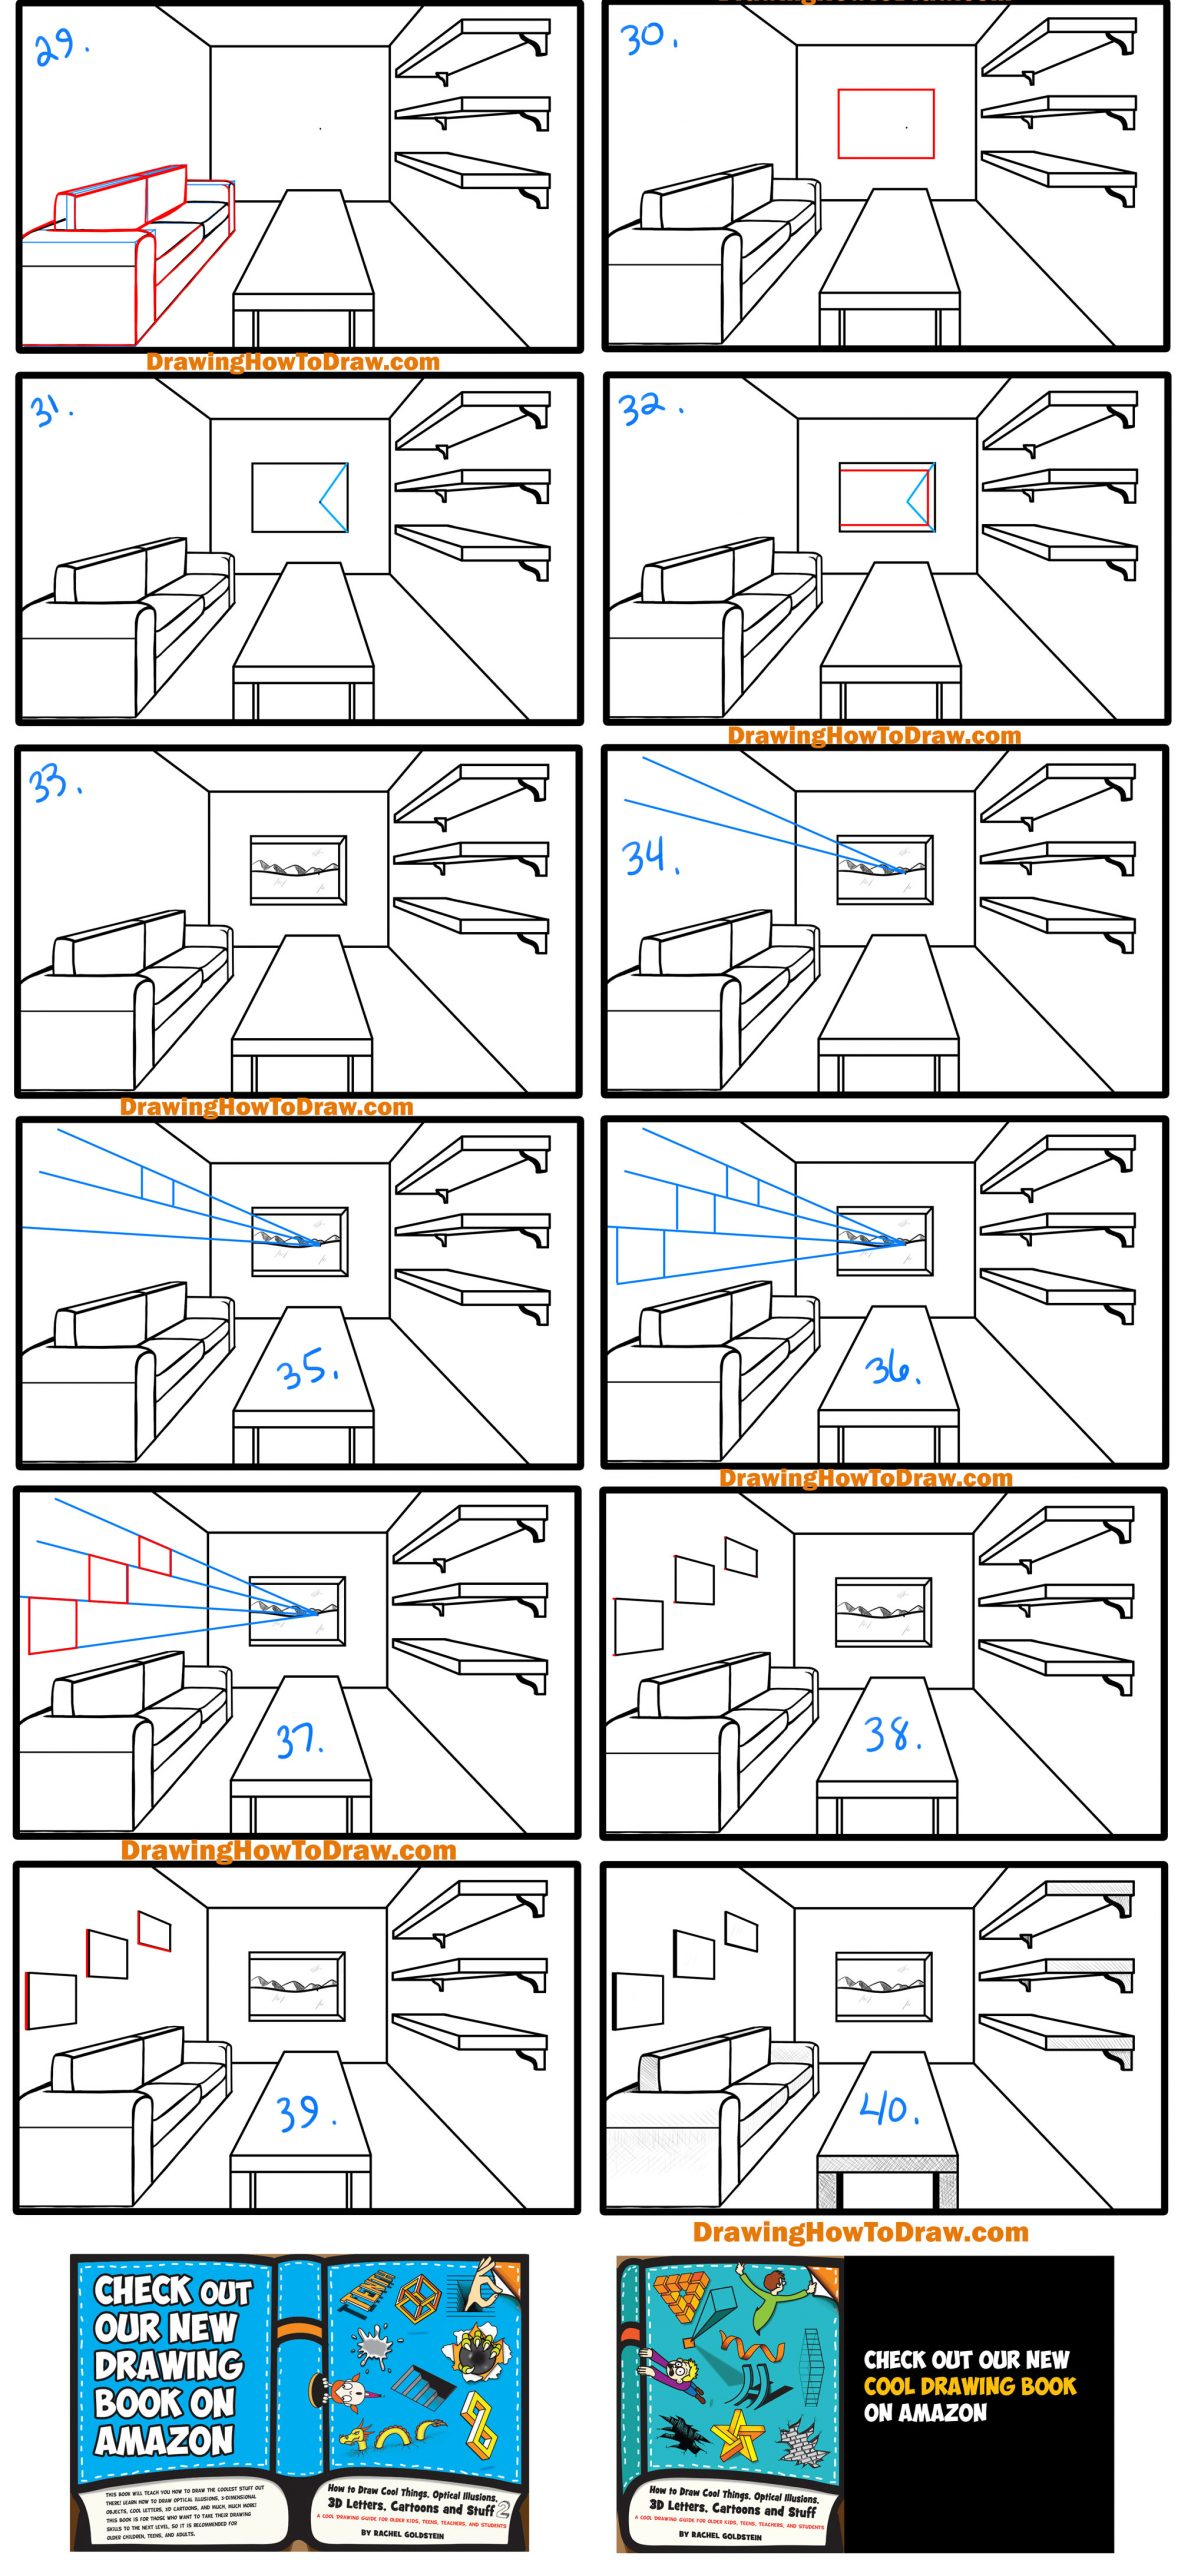 guide to drawing a room couch, shelves,window and table in 1 point perspective